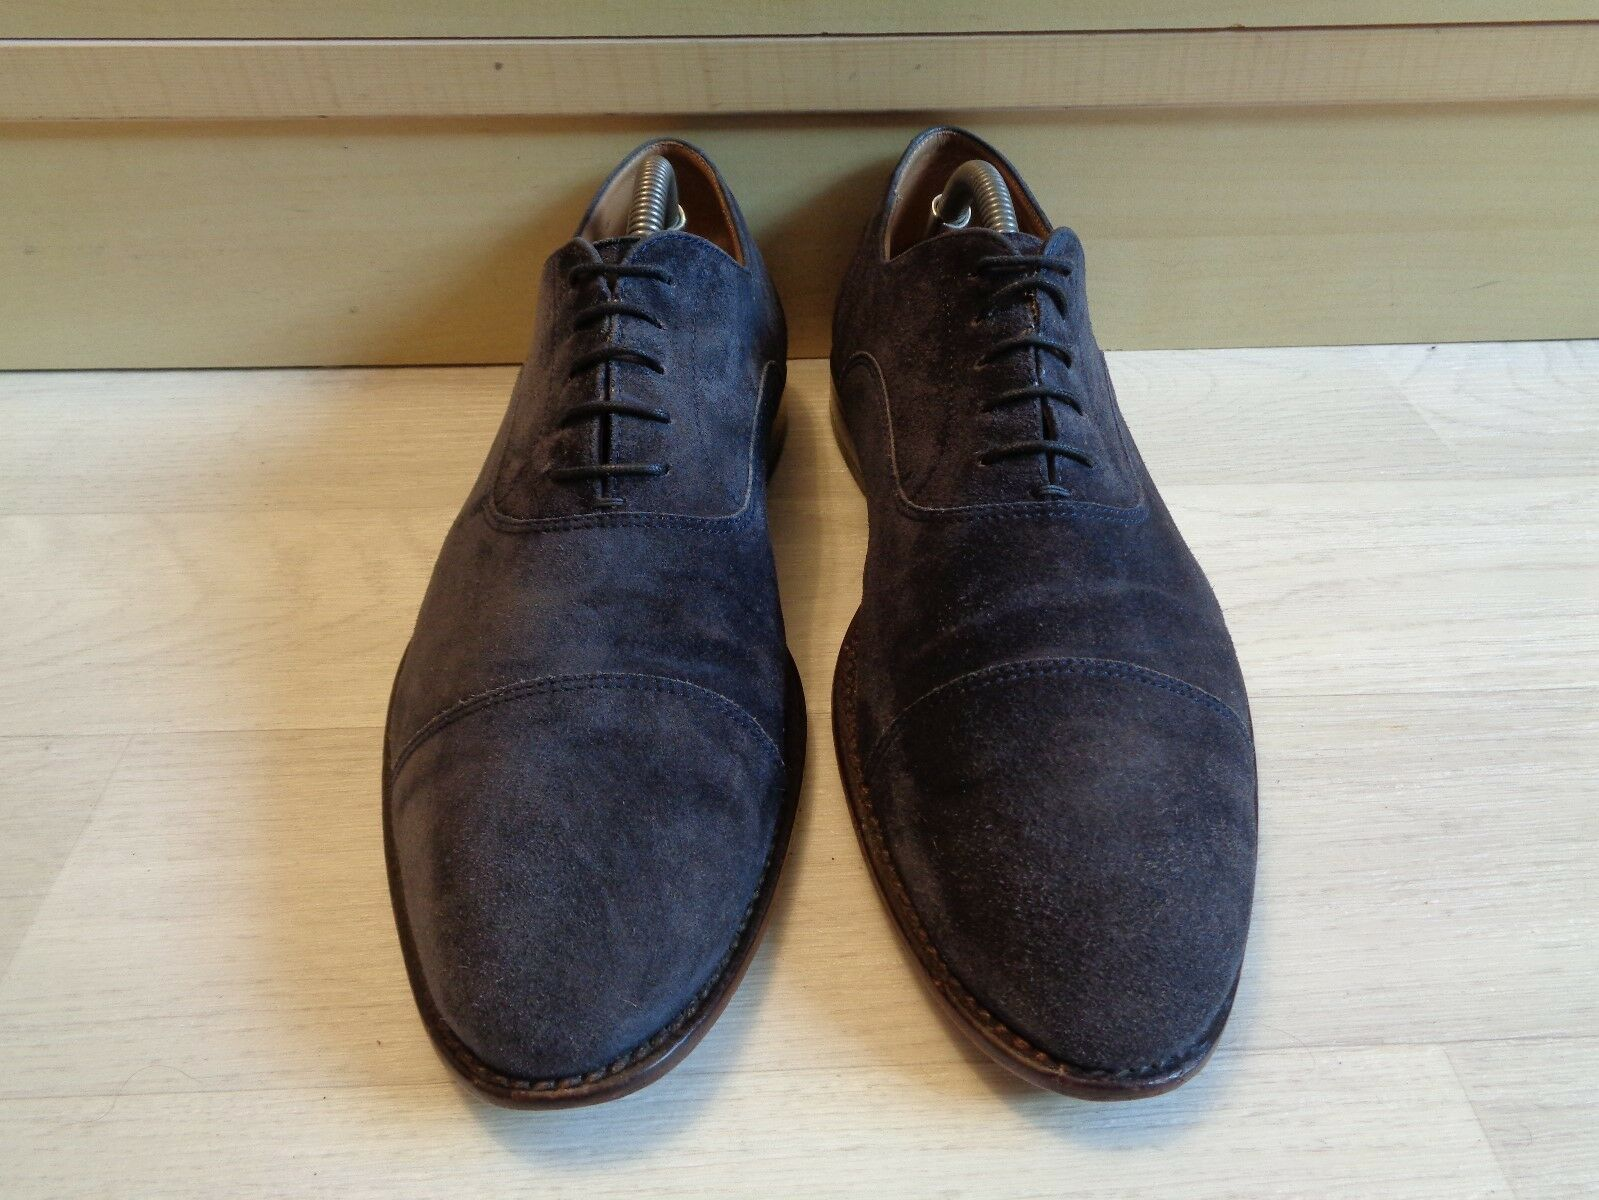 Hugo Boss navy suede oxford oxford oxford UK 8 42 mens full leather cap toe business lace up  a07163